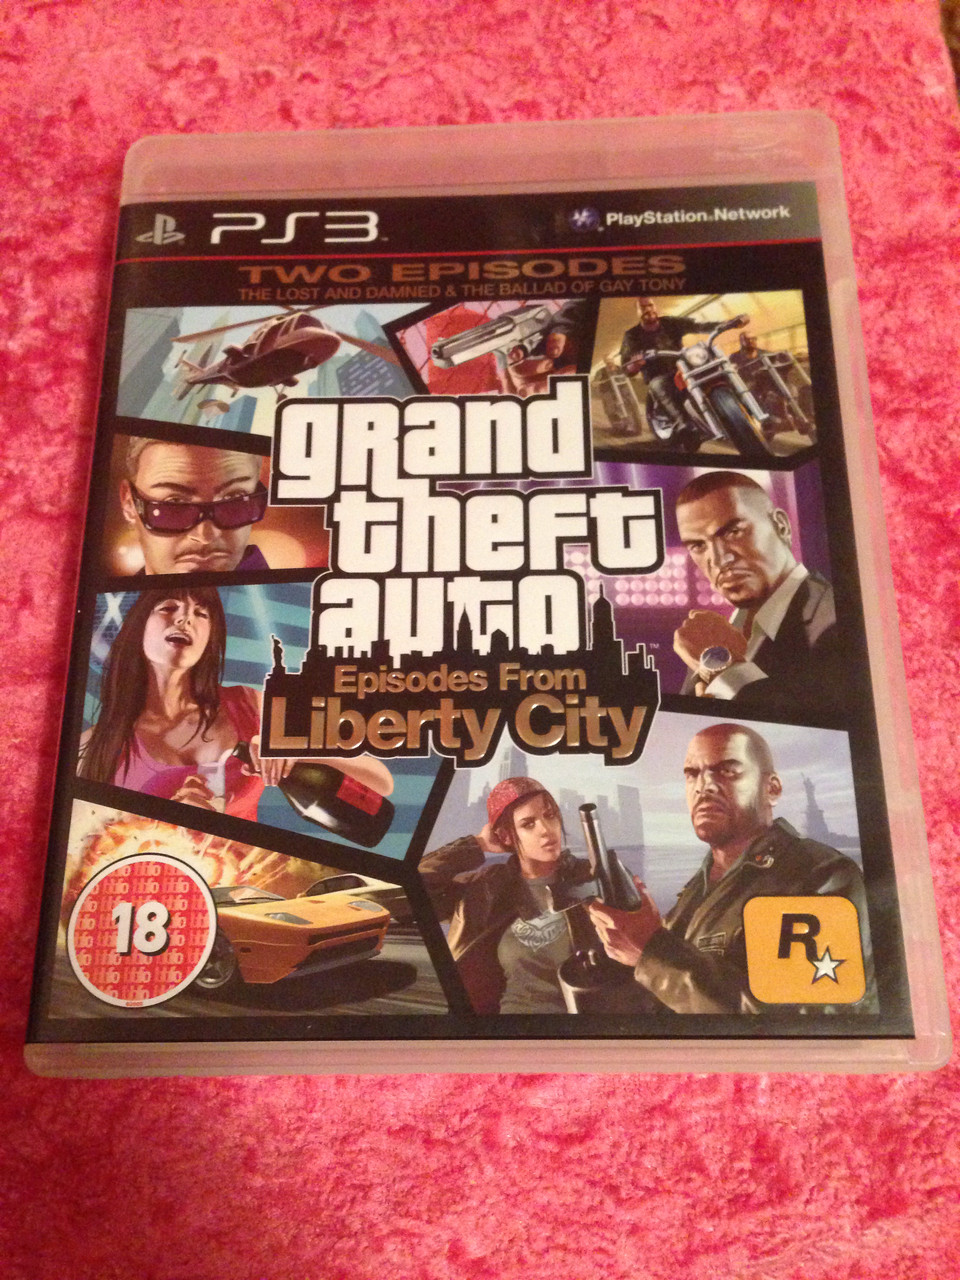 GTA / Grand Theft Auto: Episodes From Liberty City